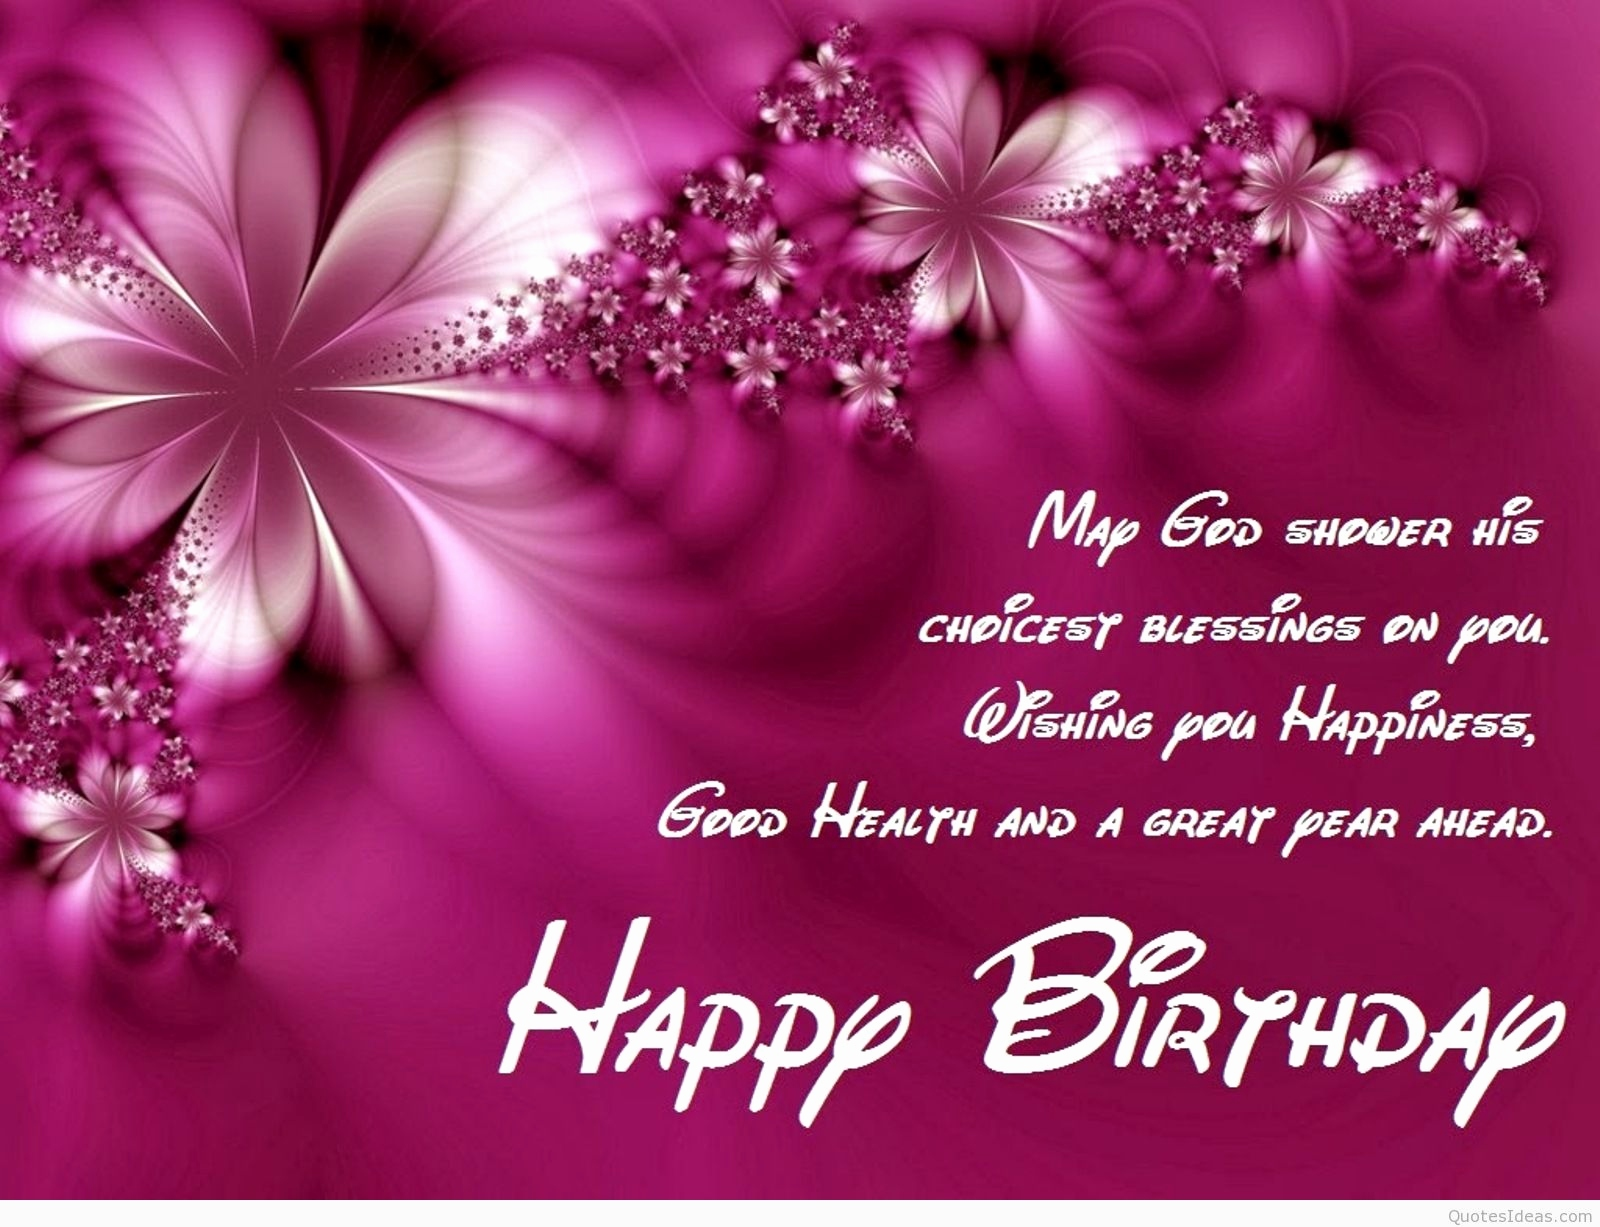 birthday card for lover free download ; birthday-card-program-free-download-luxury-happy-birthday-quotes-images-happy-birthday-wallpapers-of-birthday-card-program-free-download